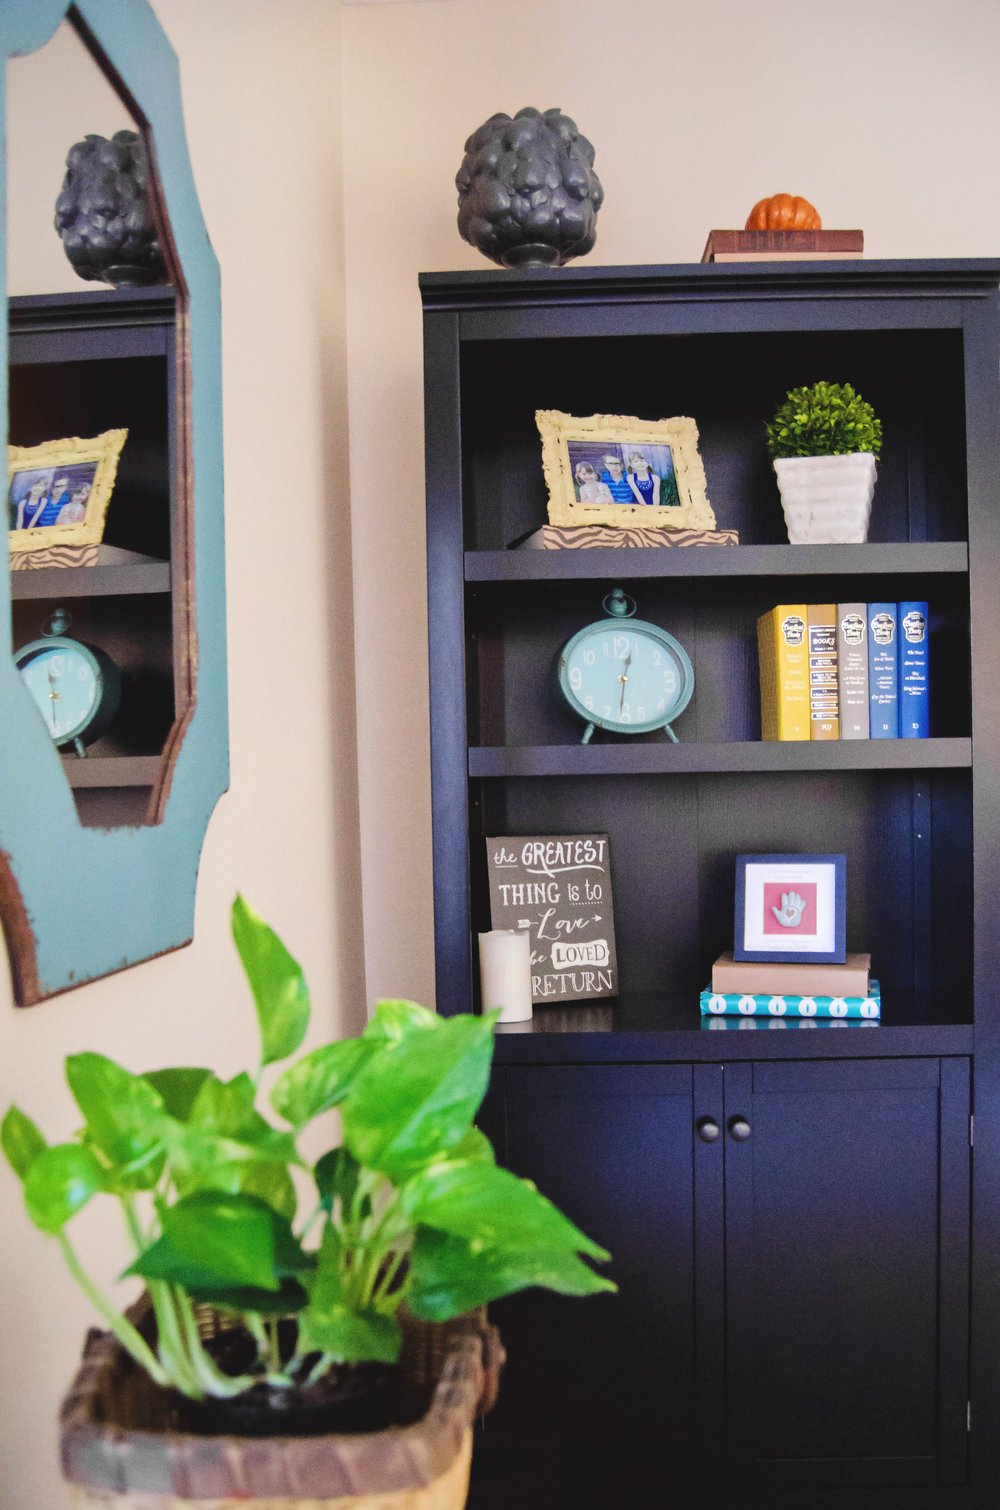 Shelf Styling Using Picture Frames and Books.